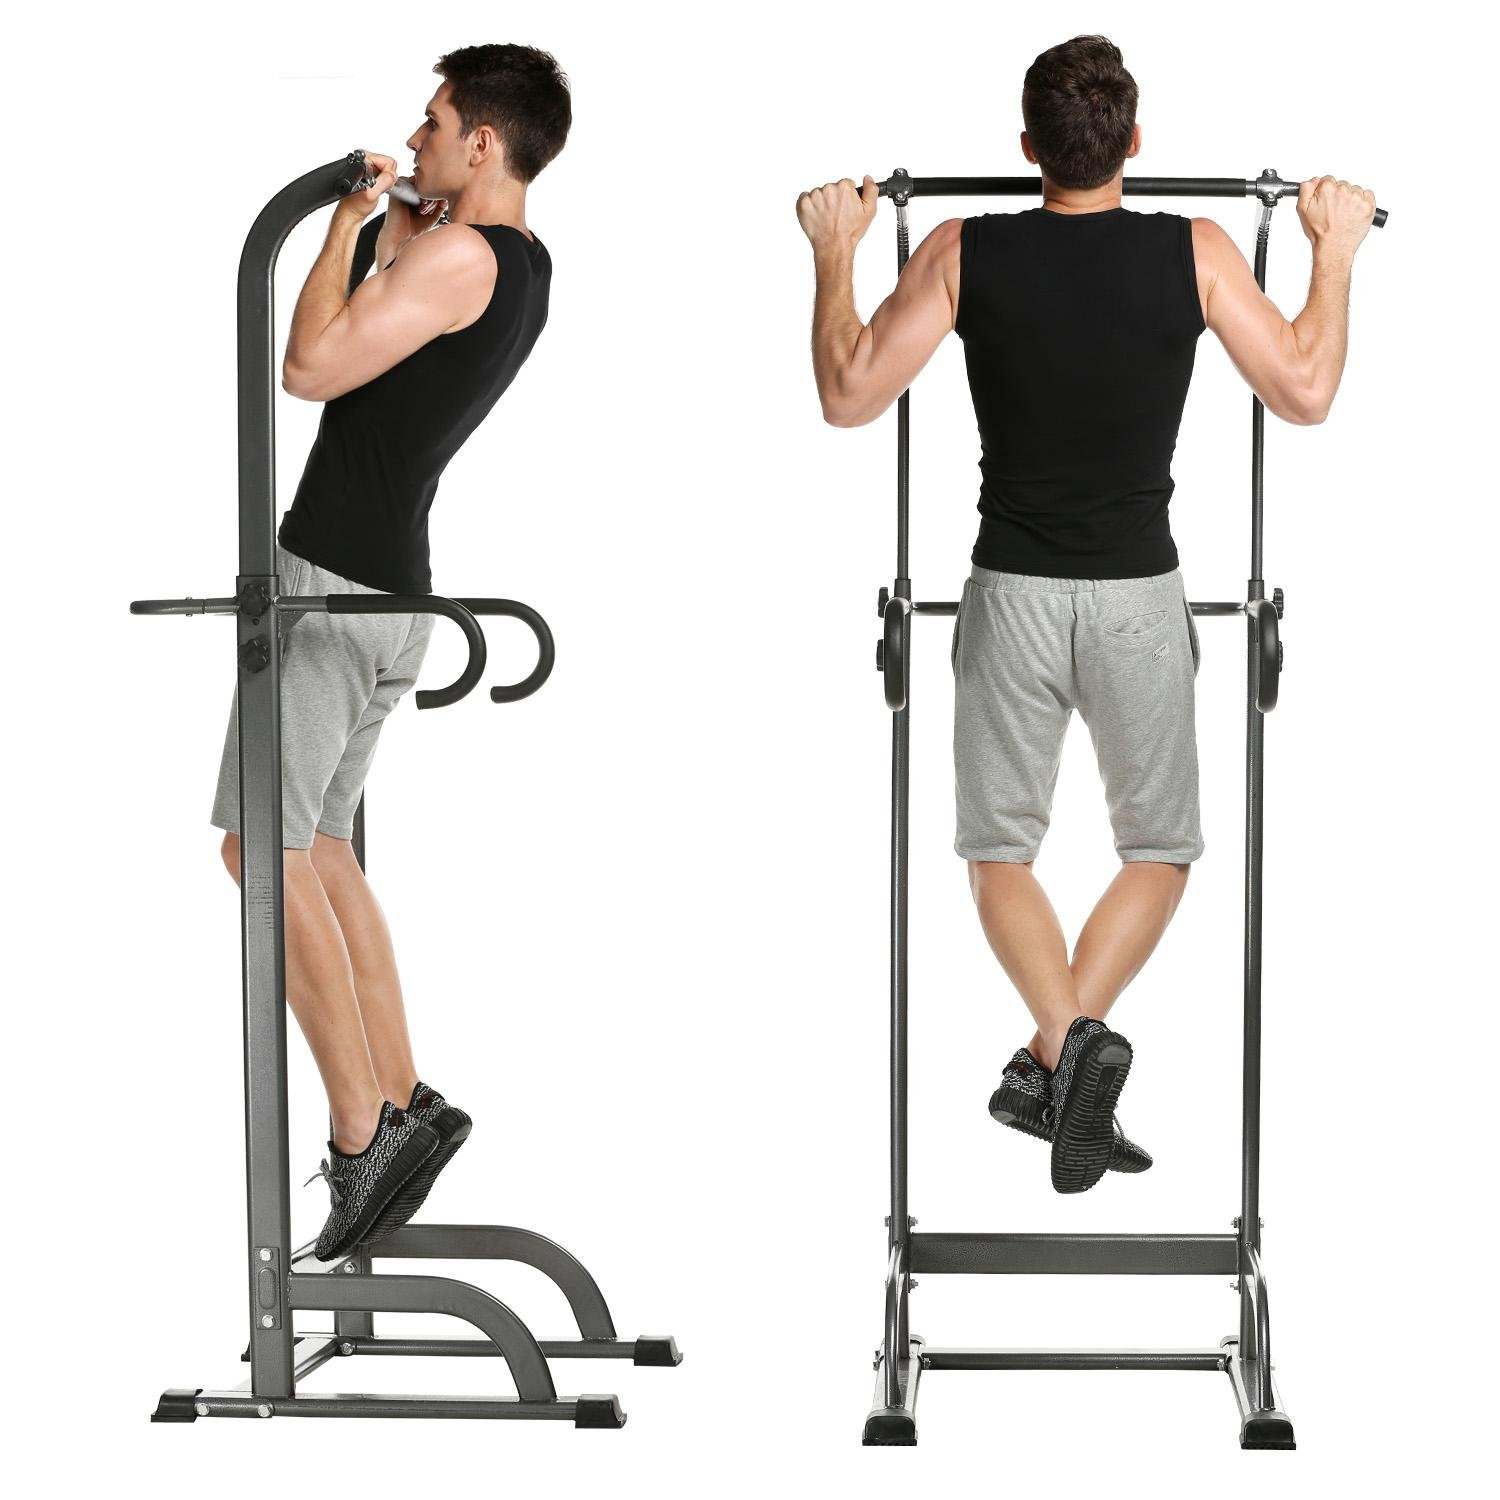 Power Tower, Adjustable Pull Up Chin Up Bar Standing Equipment Strength Fitness Workout Station for Home Gym (US STOCK) by Cosway